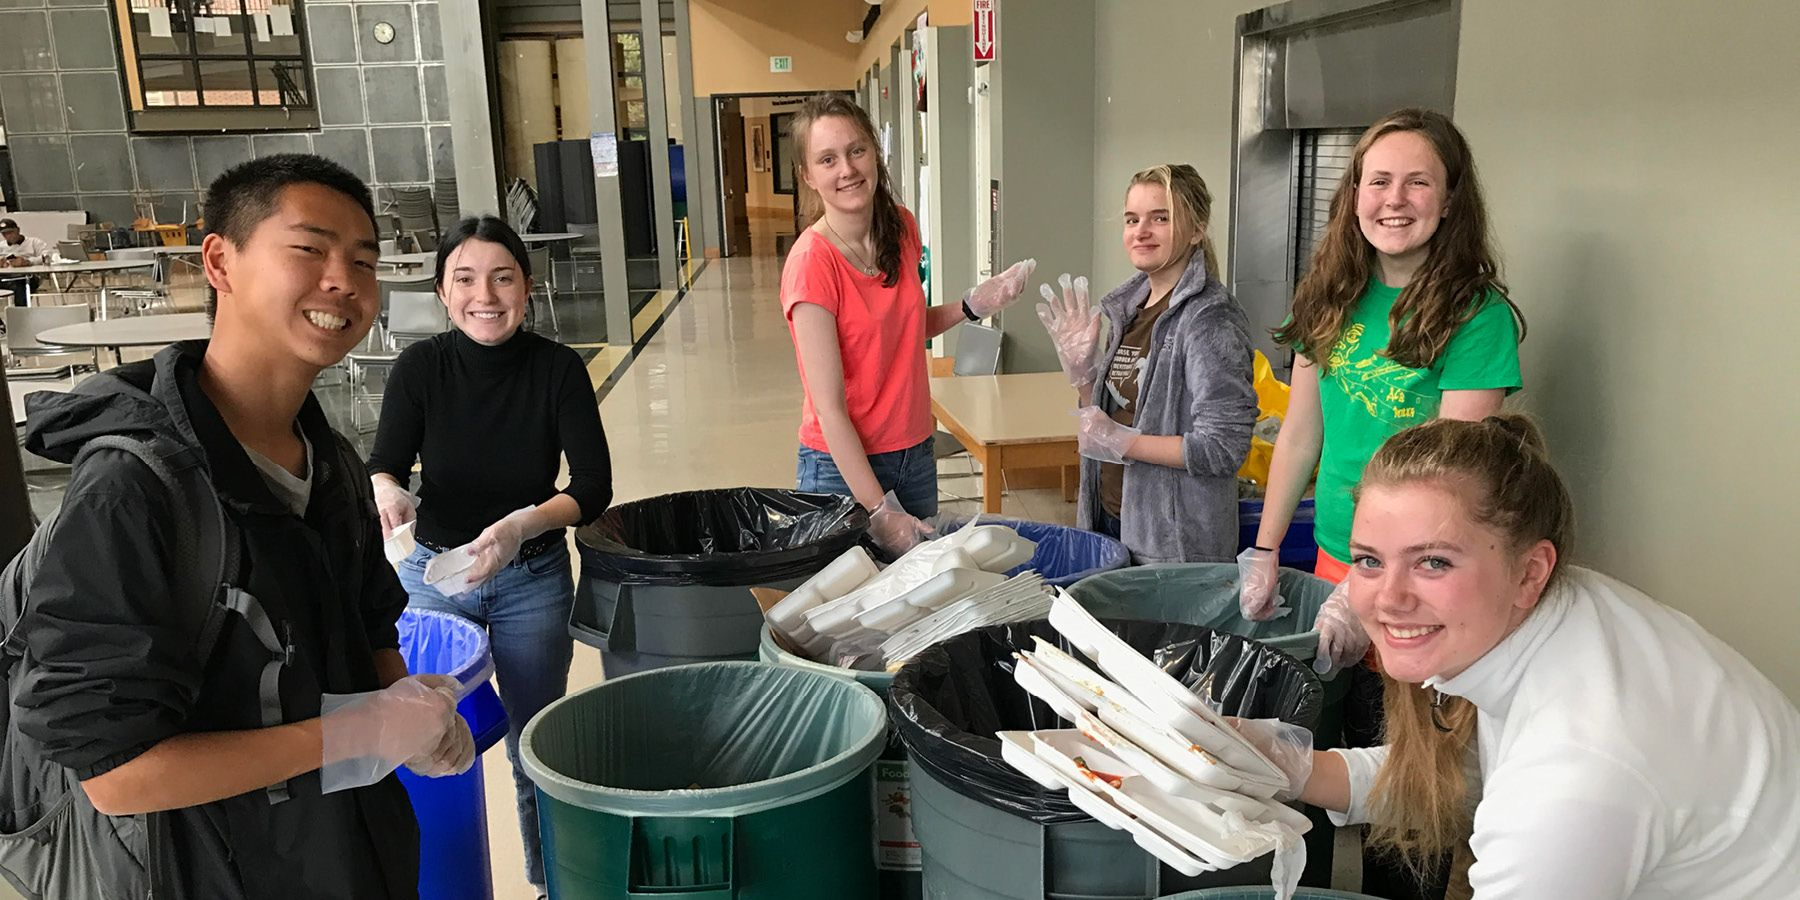 Group of high school students separating trash at their school